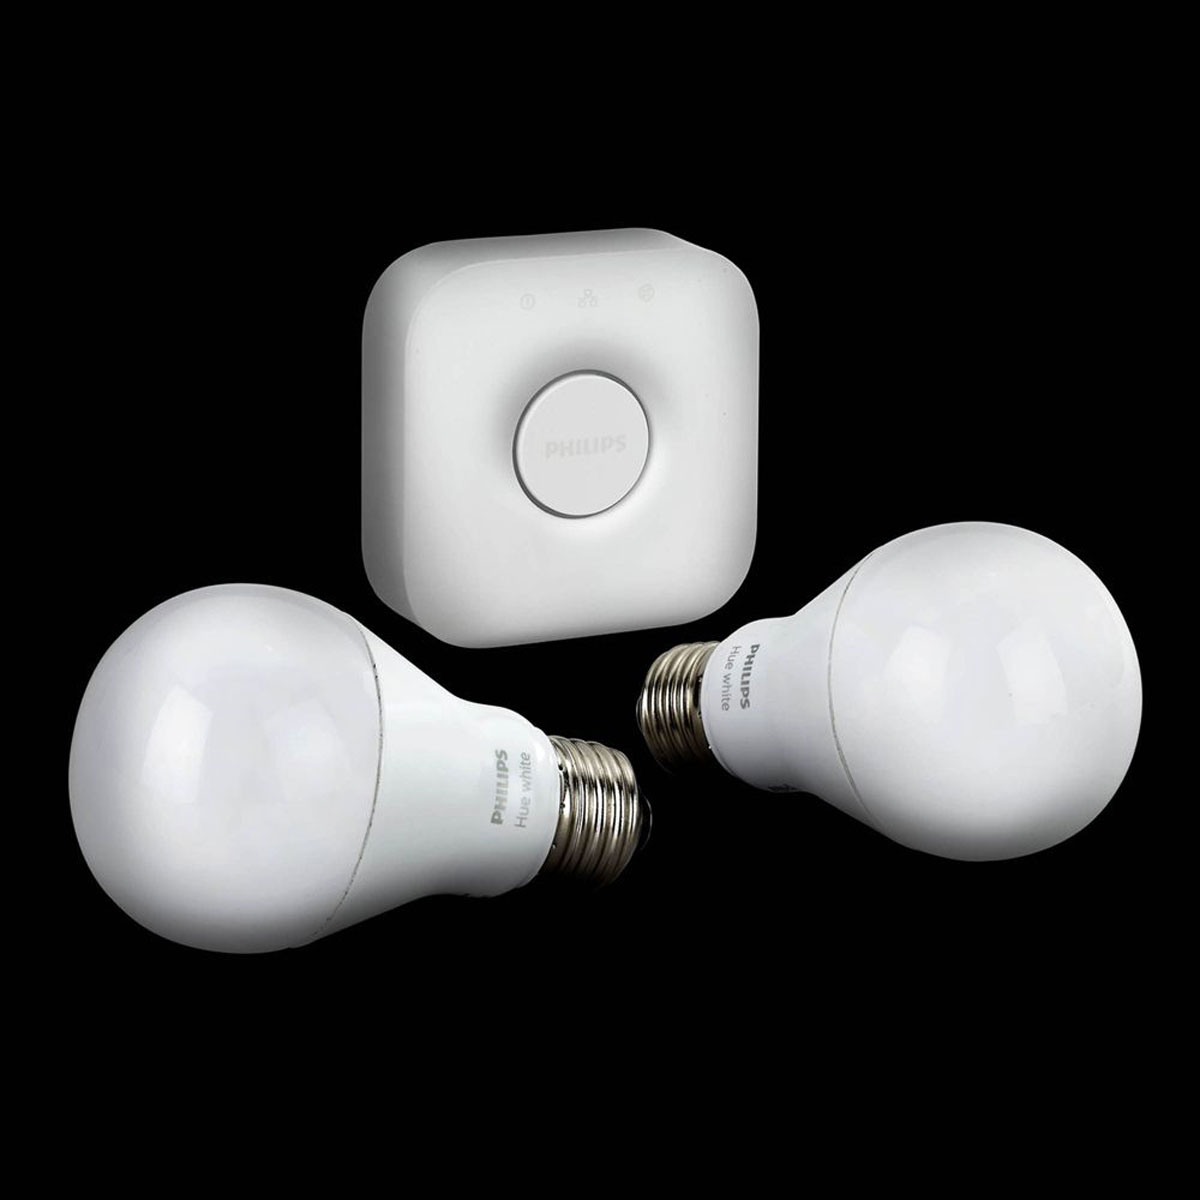 philips hue white starterset e27 a60 2 lampen met bridge 2 0. Black Bedroom Furniture Sets. Home Design Ideas